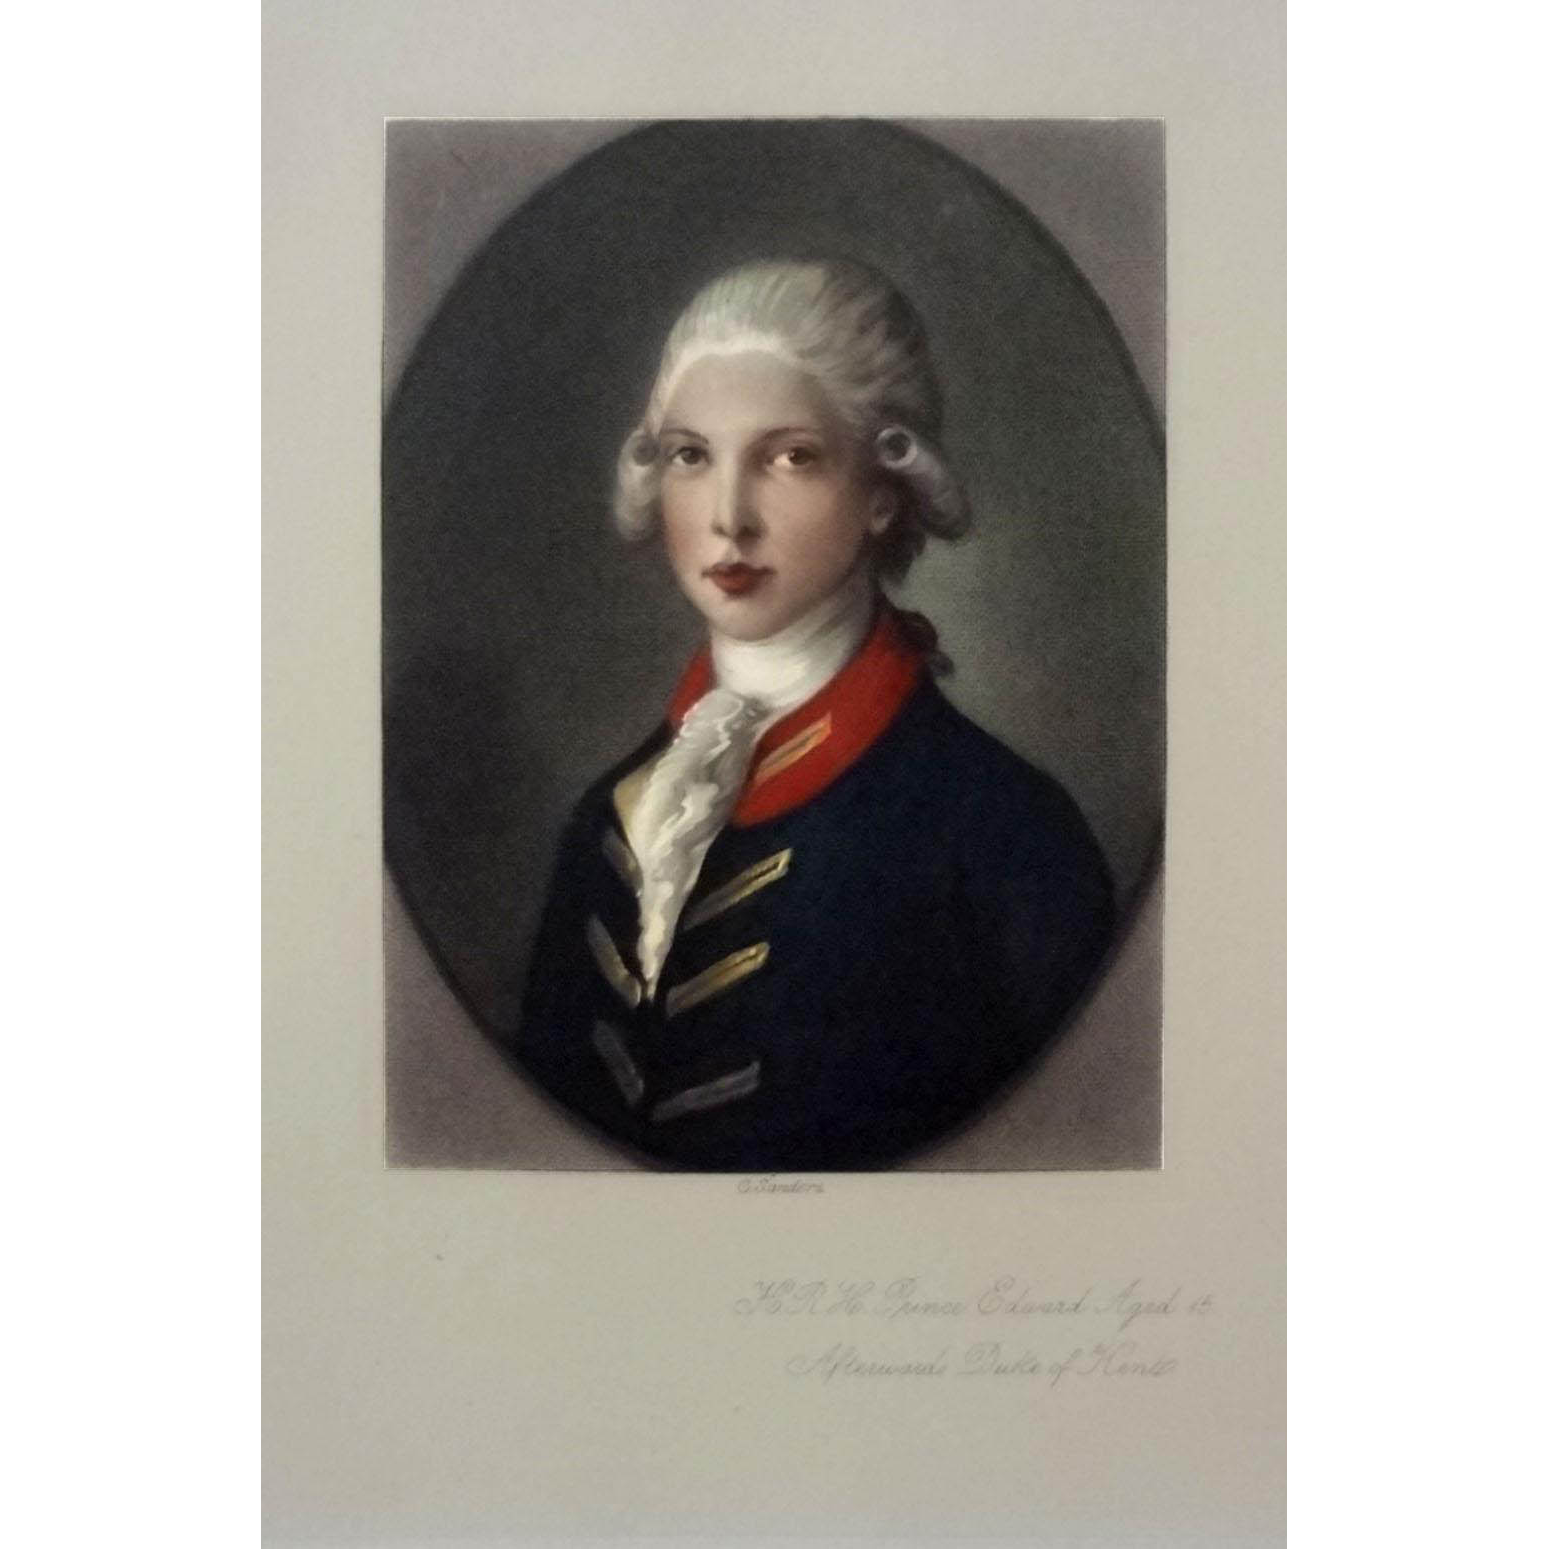 Color Mezzotint Prince Edward, Duke of Kent and Strathearn Portrait by G. Sanders after Gainsborough - 19th Century, England